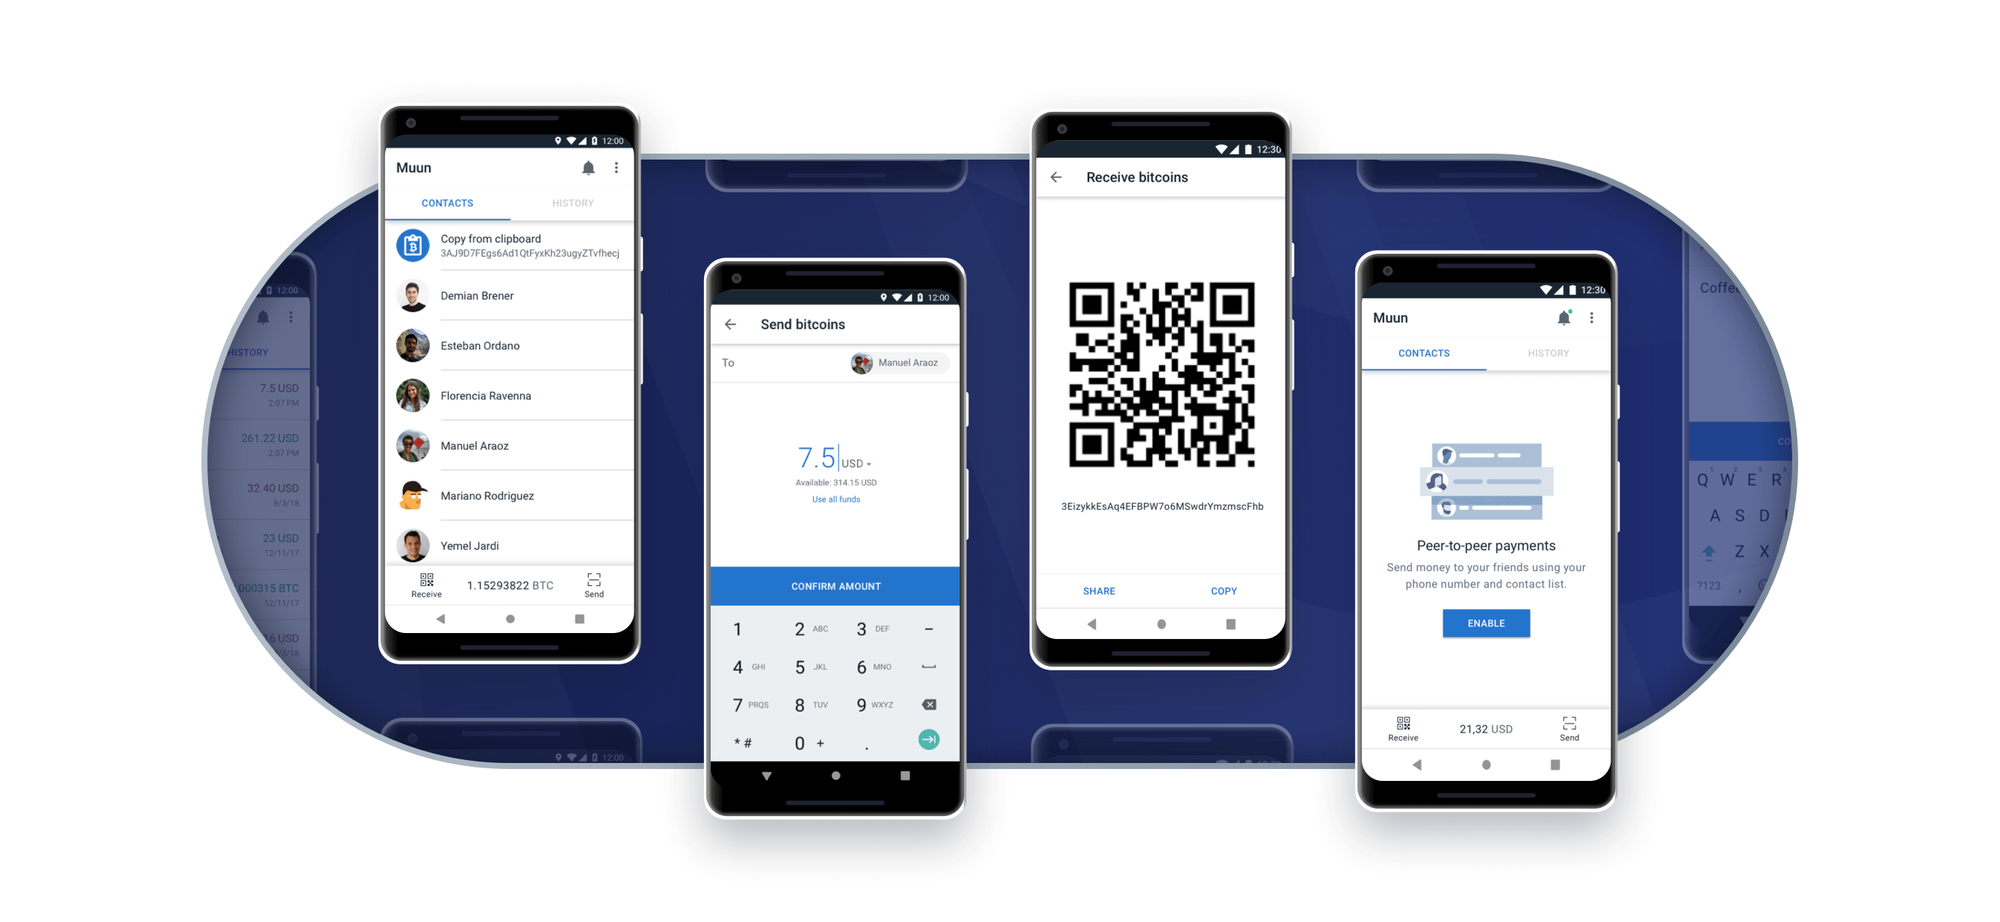 Introducing Muun: A Secure Checking Account for Bitcoin